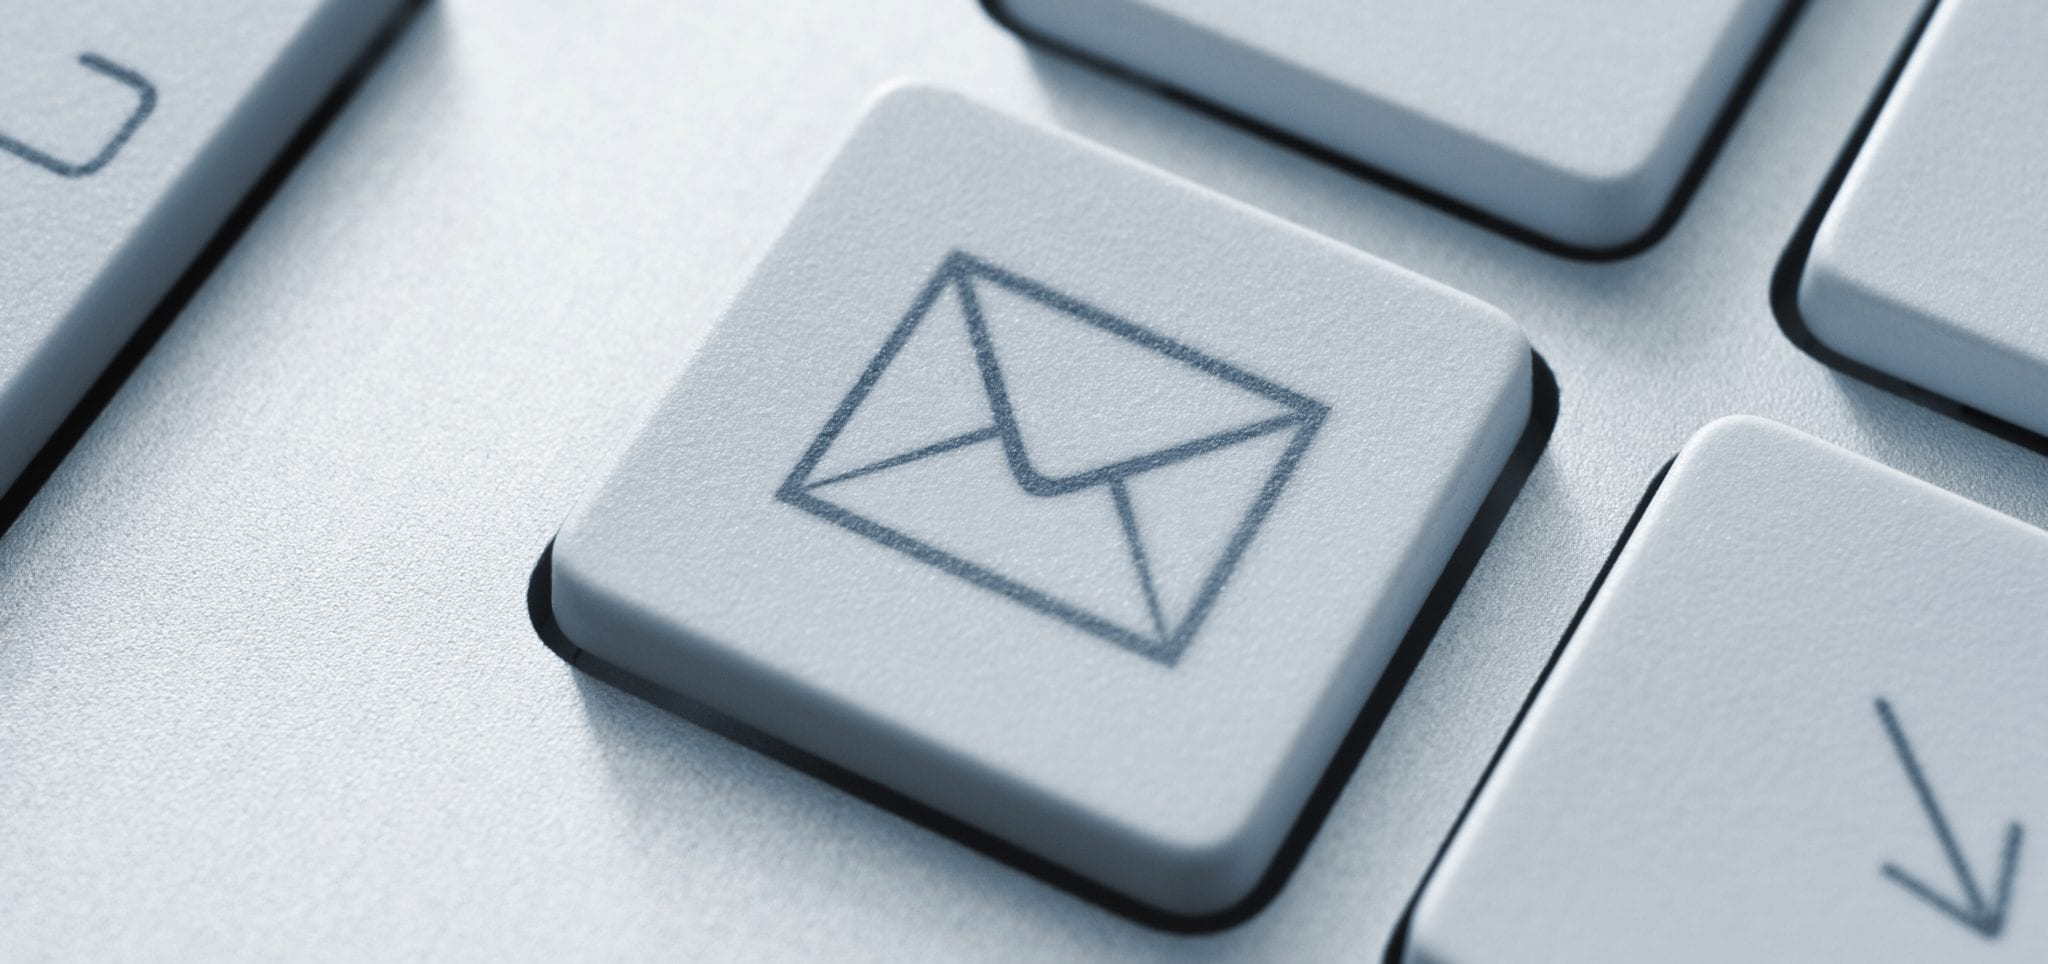 managing-your-obrien-media-email-accounts.jpg